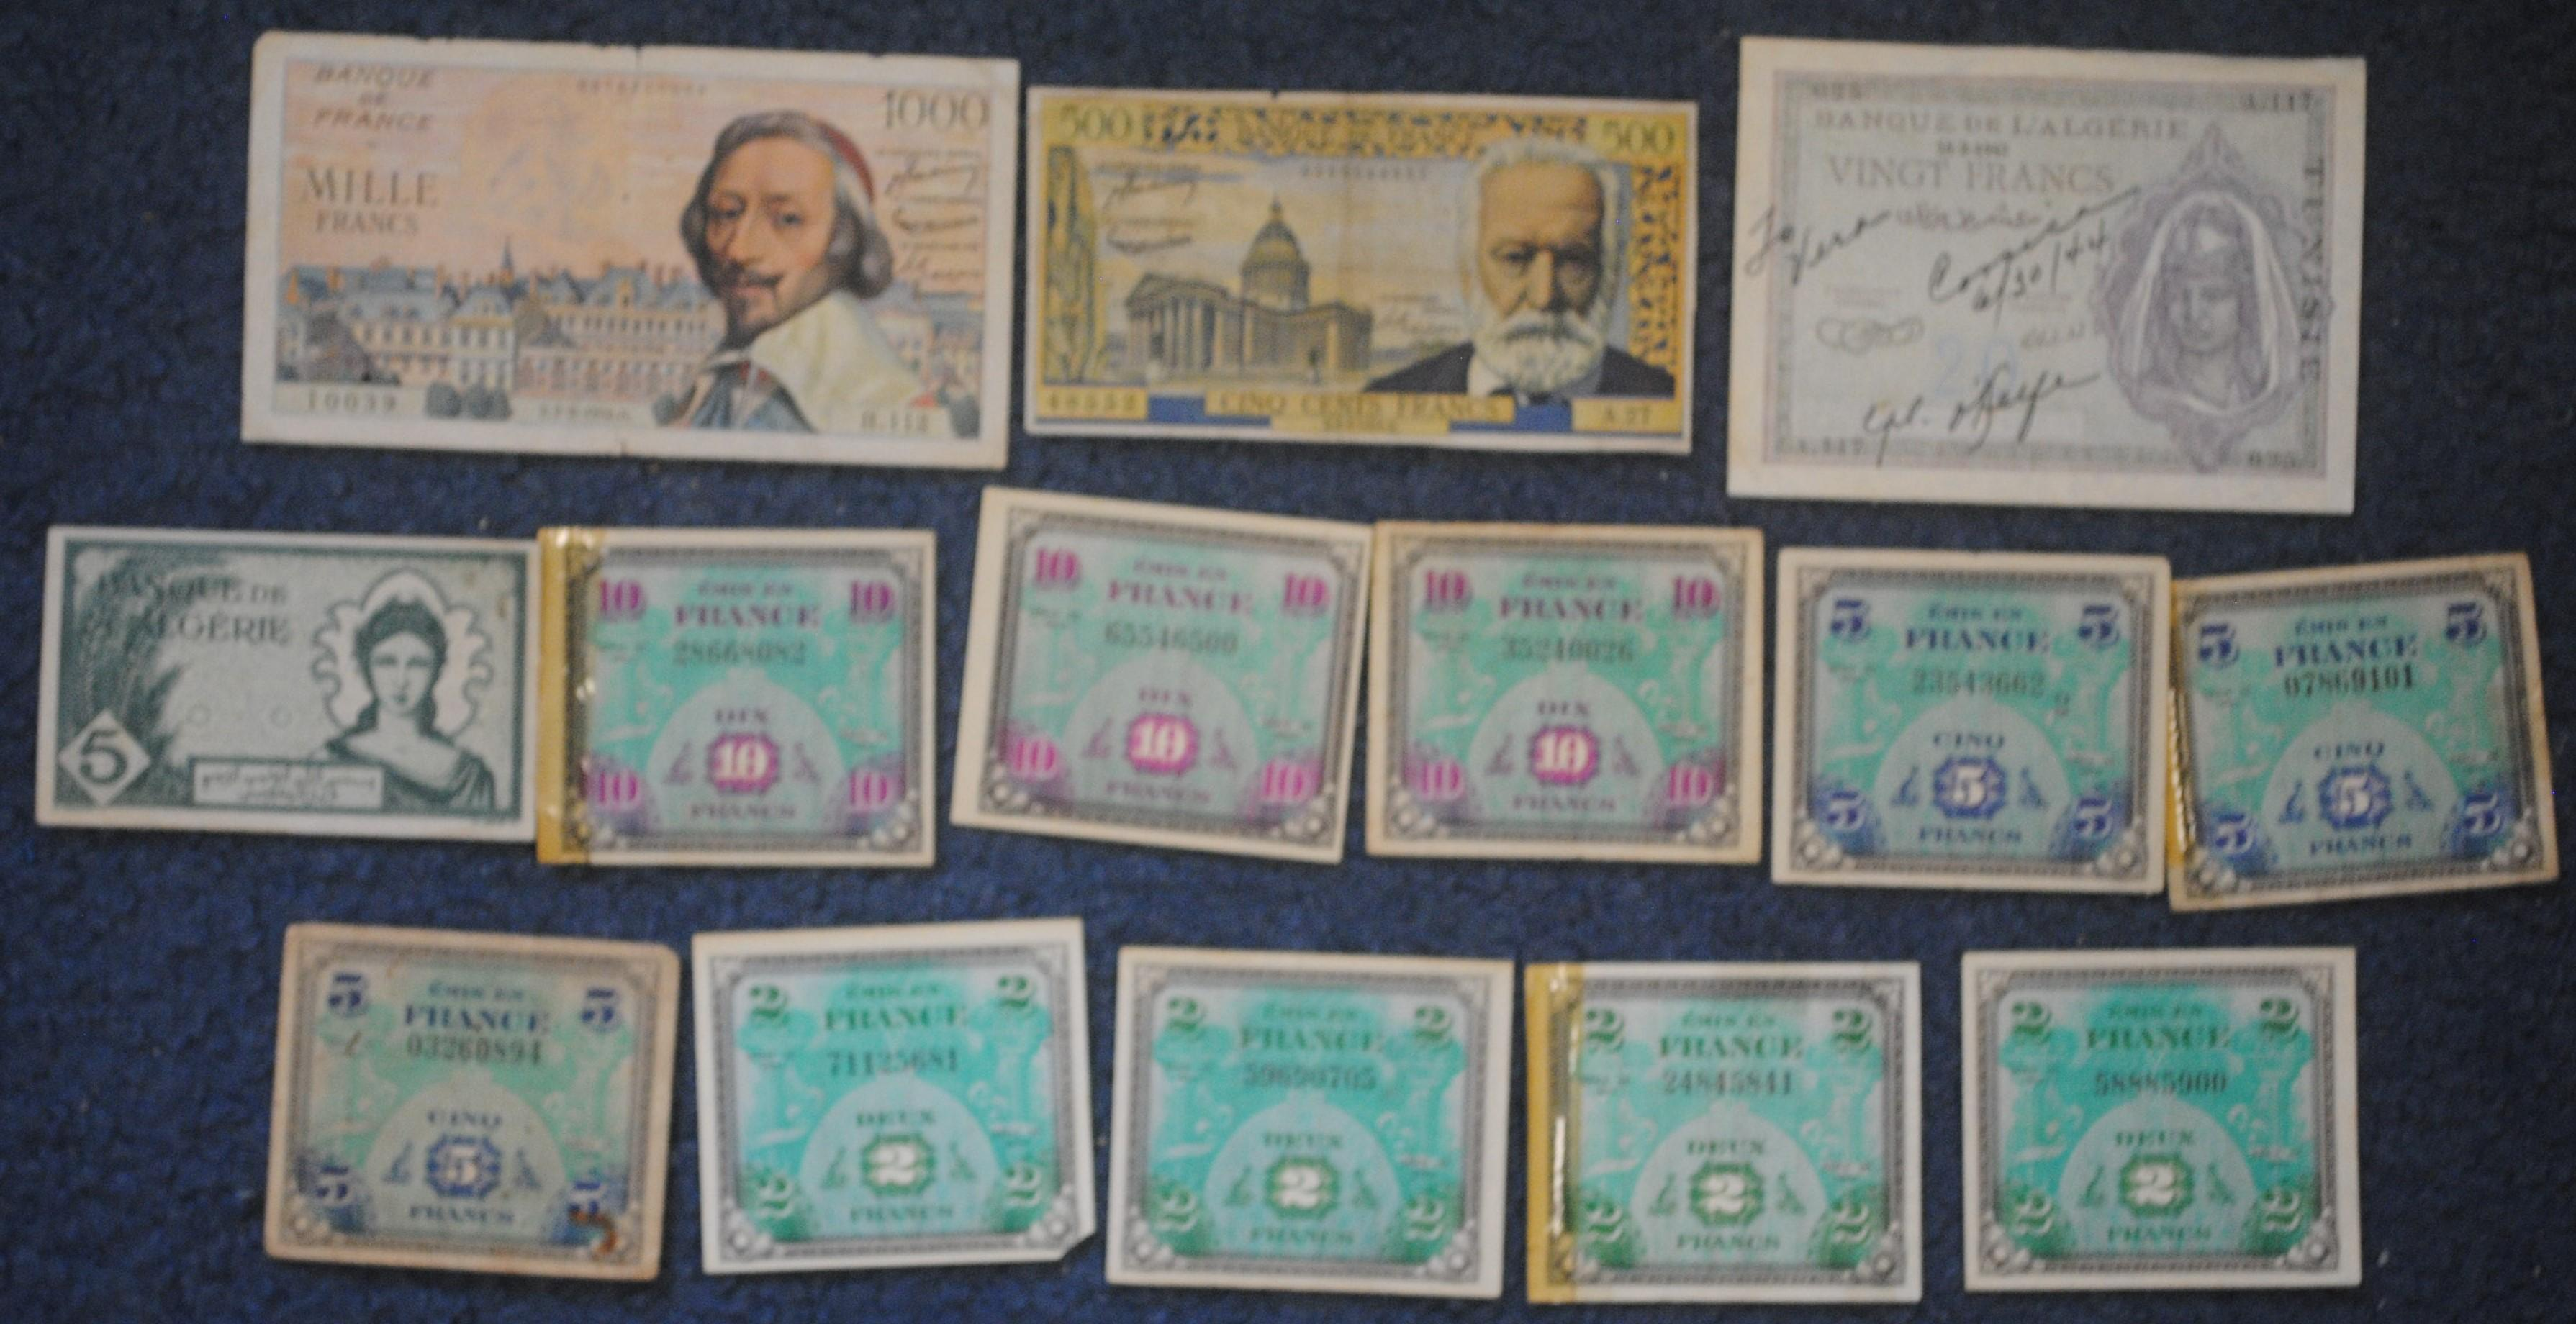 France Banknote Collection 1